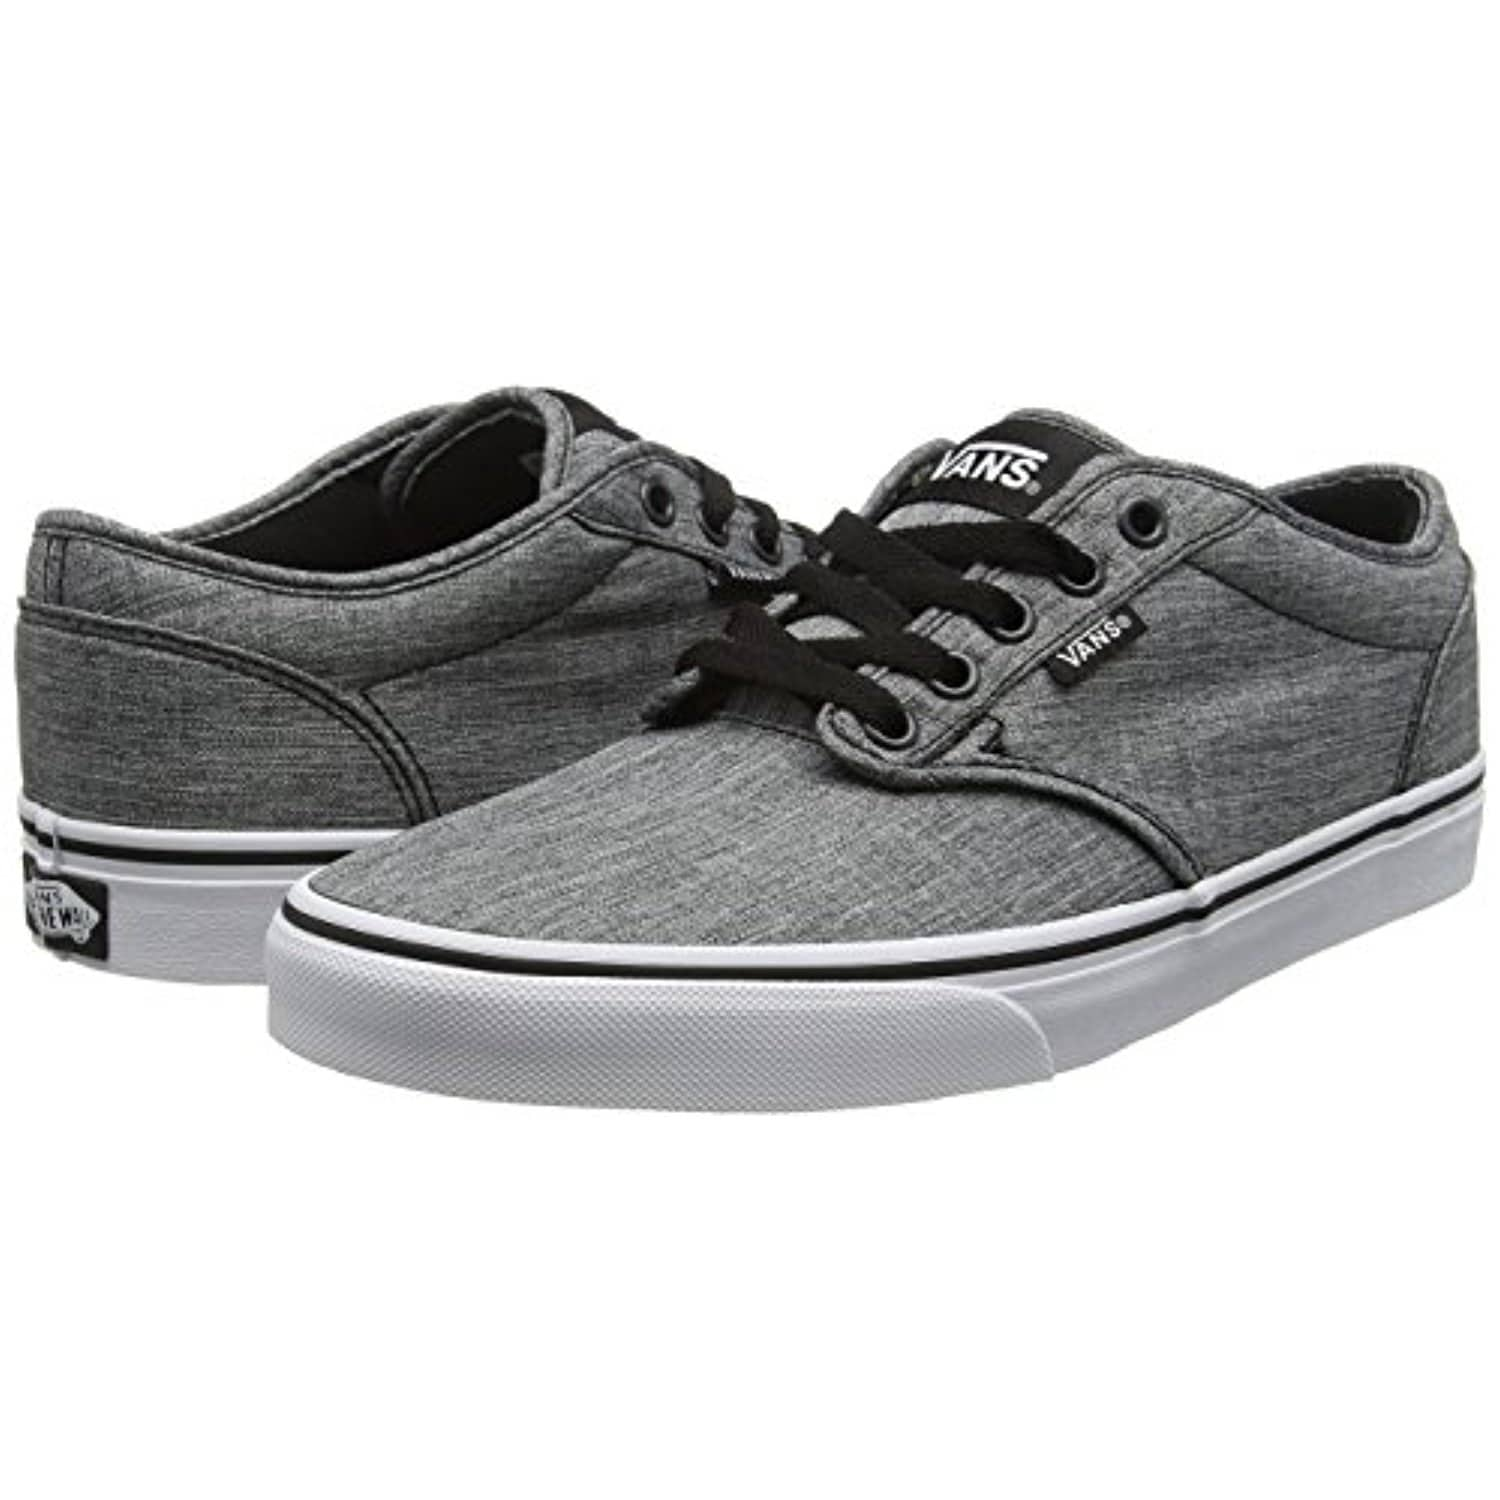 b2310022aa6 Shop Vans Rock Textile-Black-White Atwood Shoe (Us 7